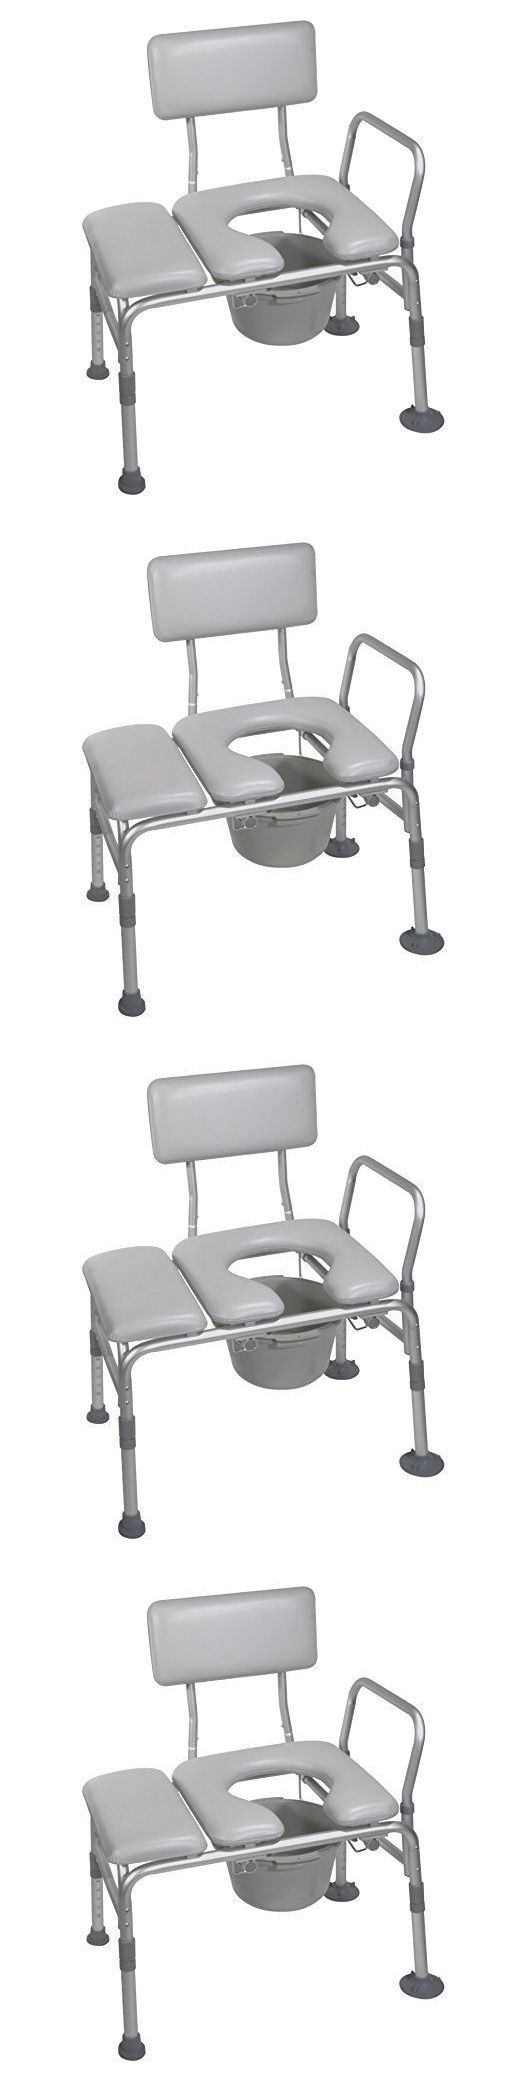 Shower and Bath Seats: Nw Handicap Padded Seat Transfer Chair Bench Commode Toilet Bath Room Shower Tub -> BUY IT NOW ONLY: $199.99 on eBay!